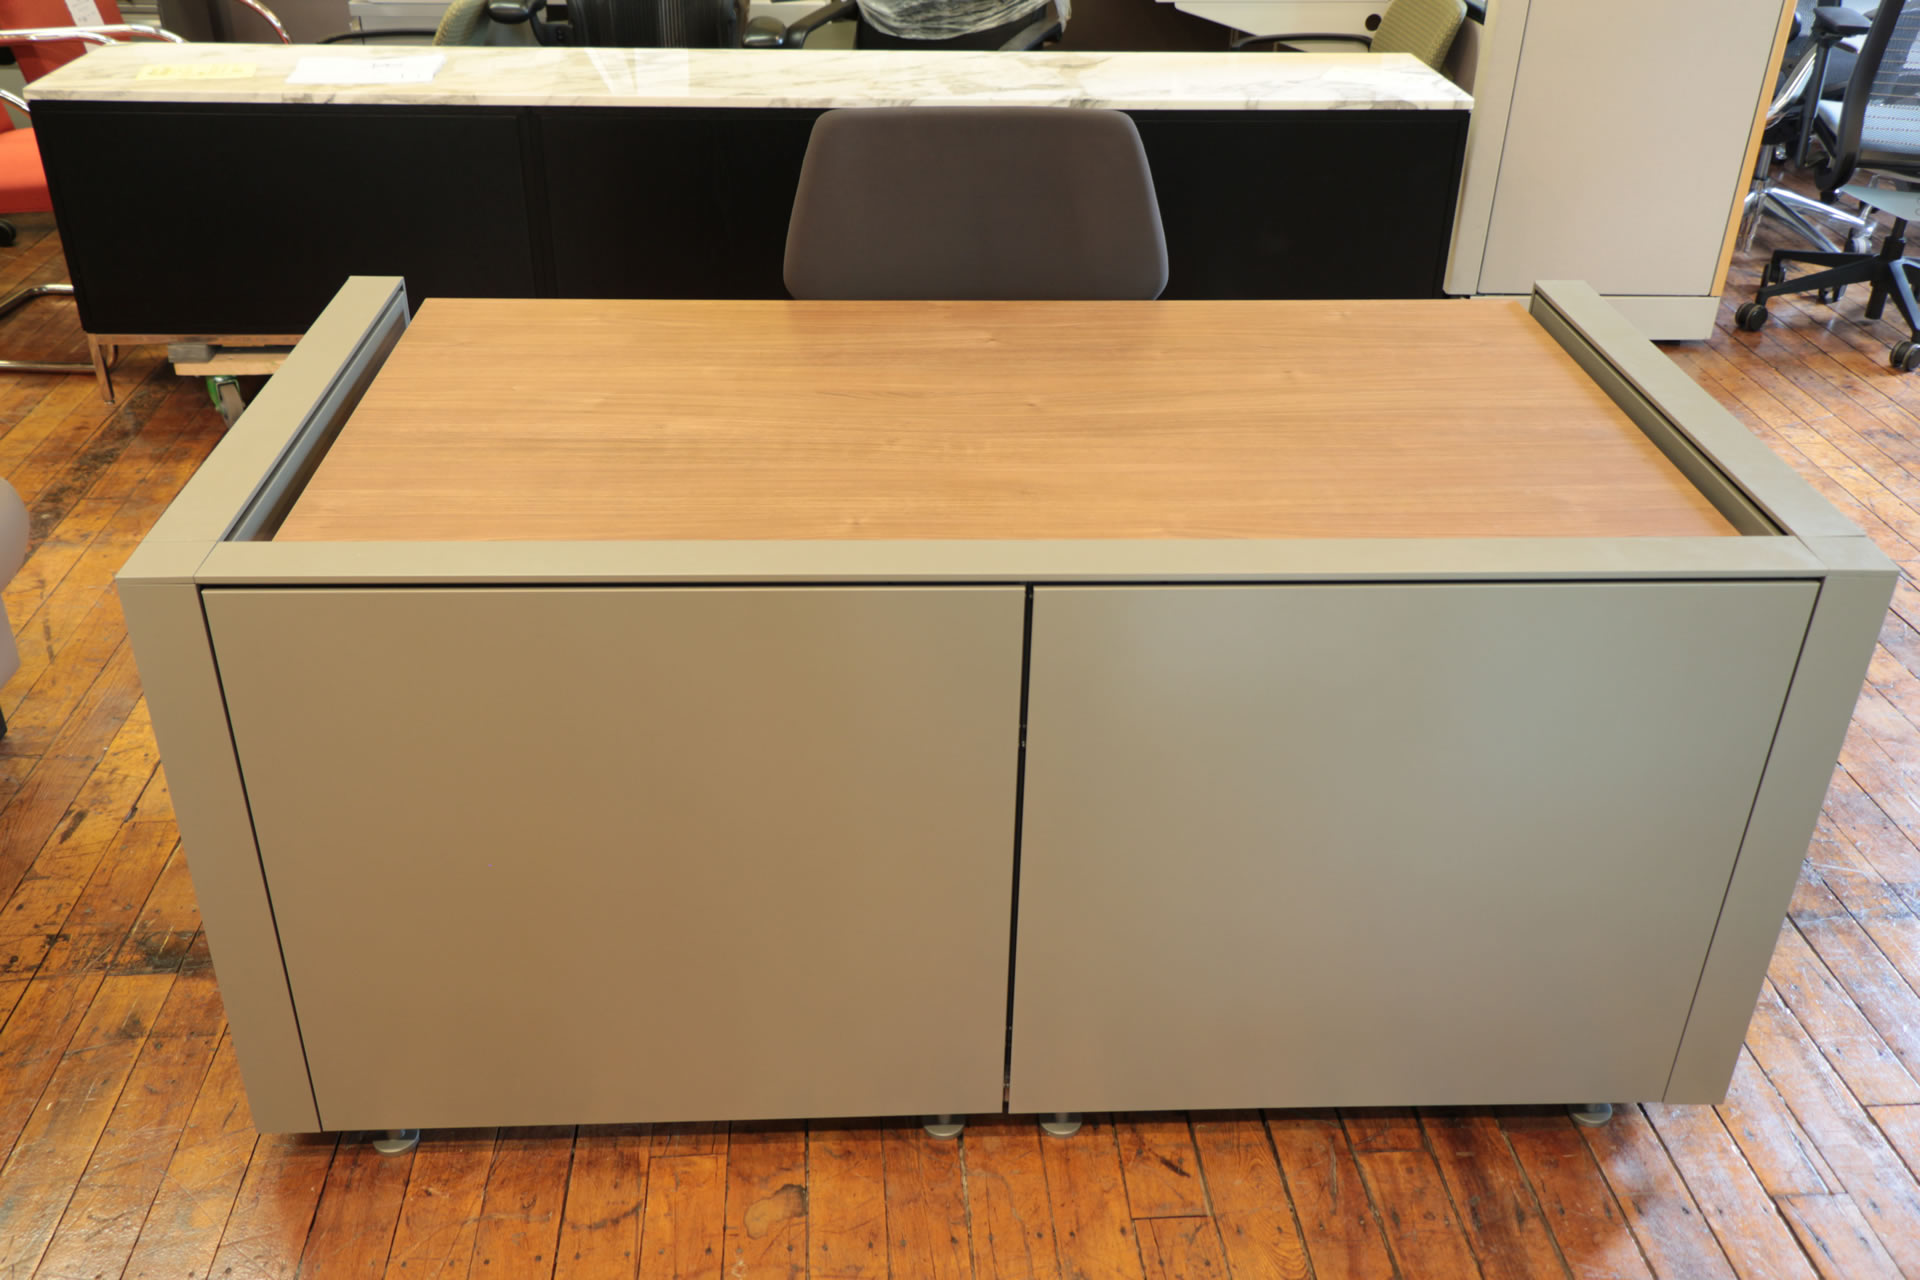 peartreeofficefurniture_peartreeofficefurniture_peartreeofficefurniture_img_8451.jpg